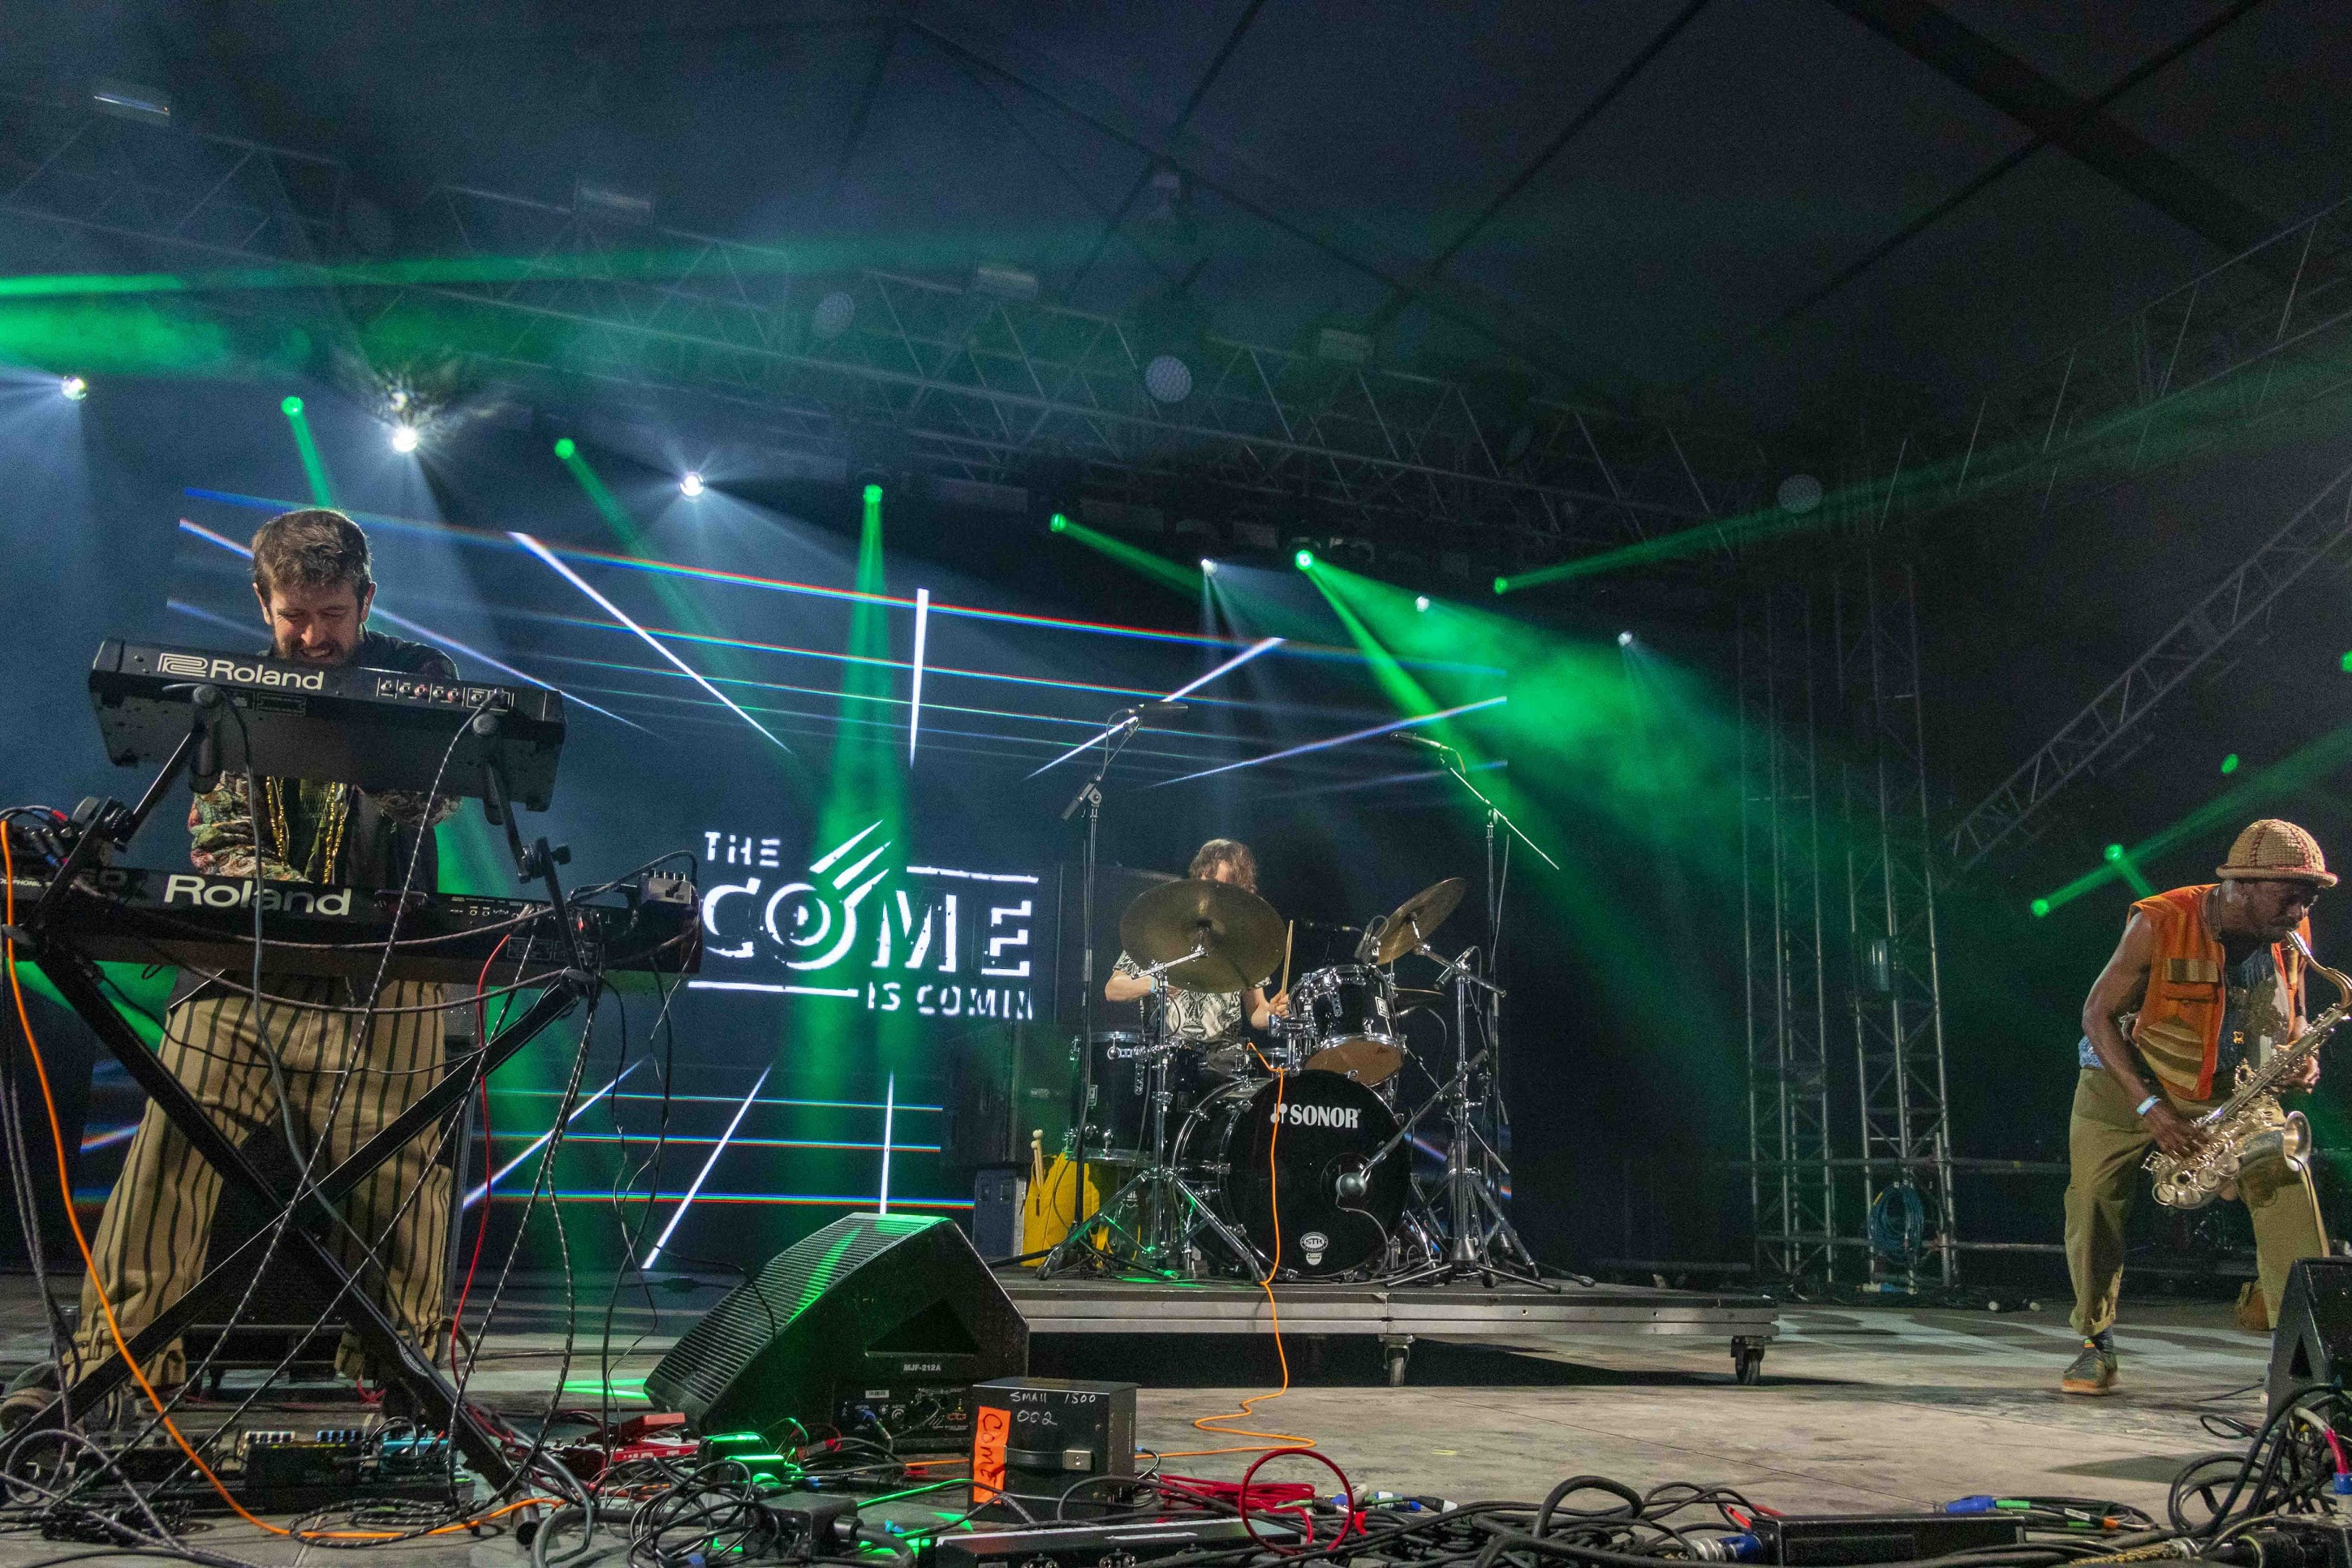 The Comet is Coming | Bonnaroo